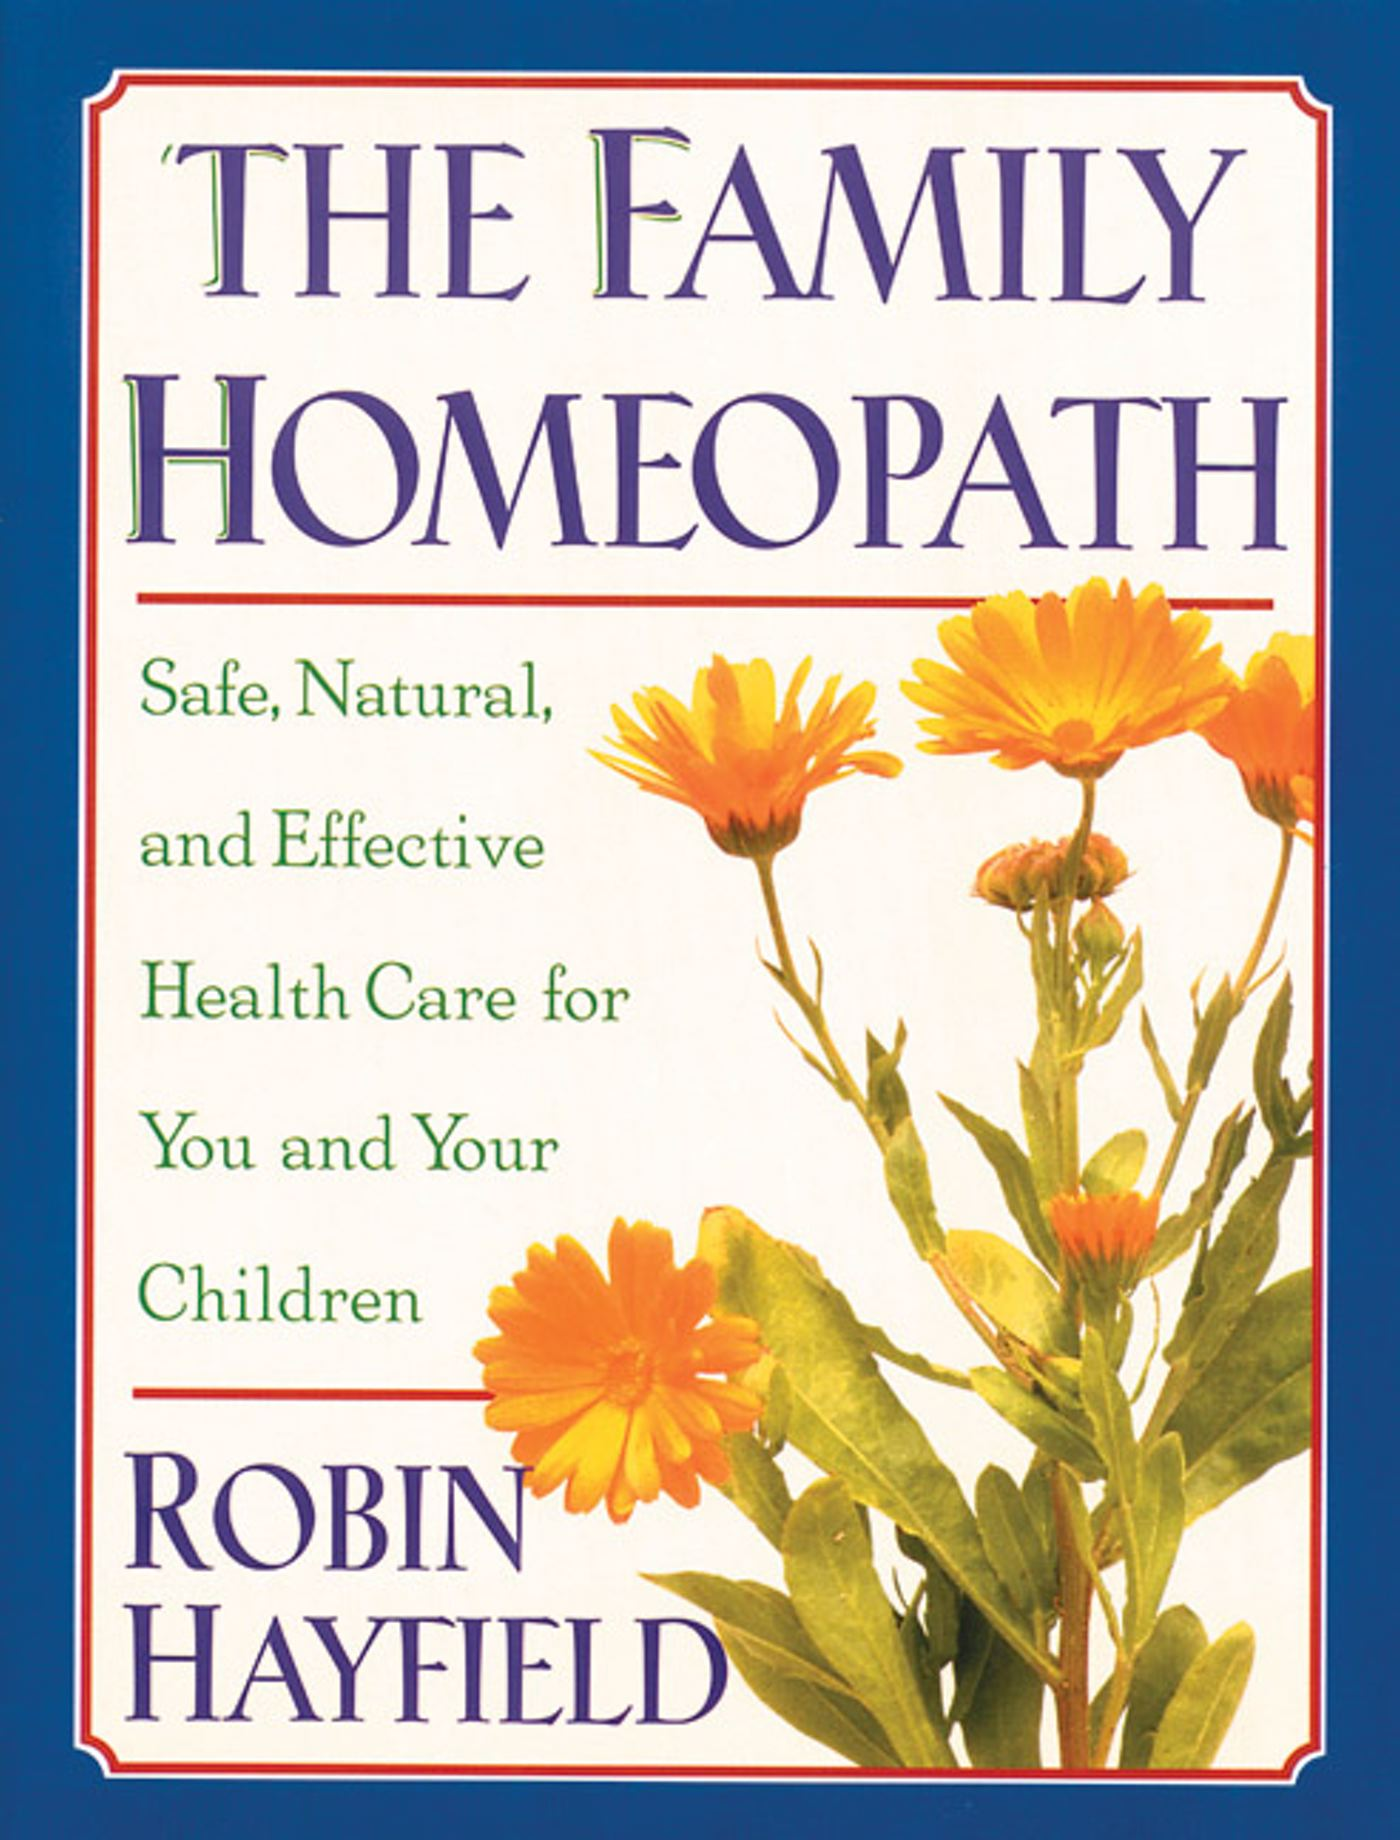 The family homeopath 9780892815326 hr